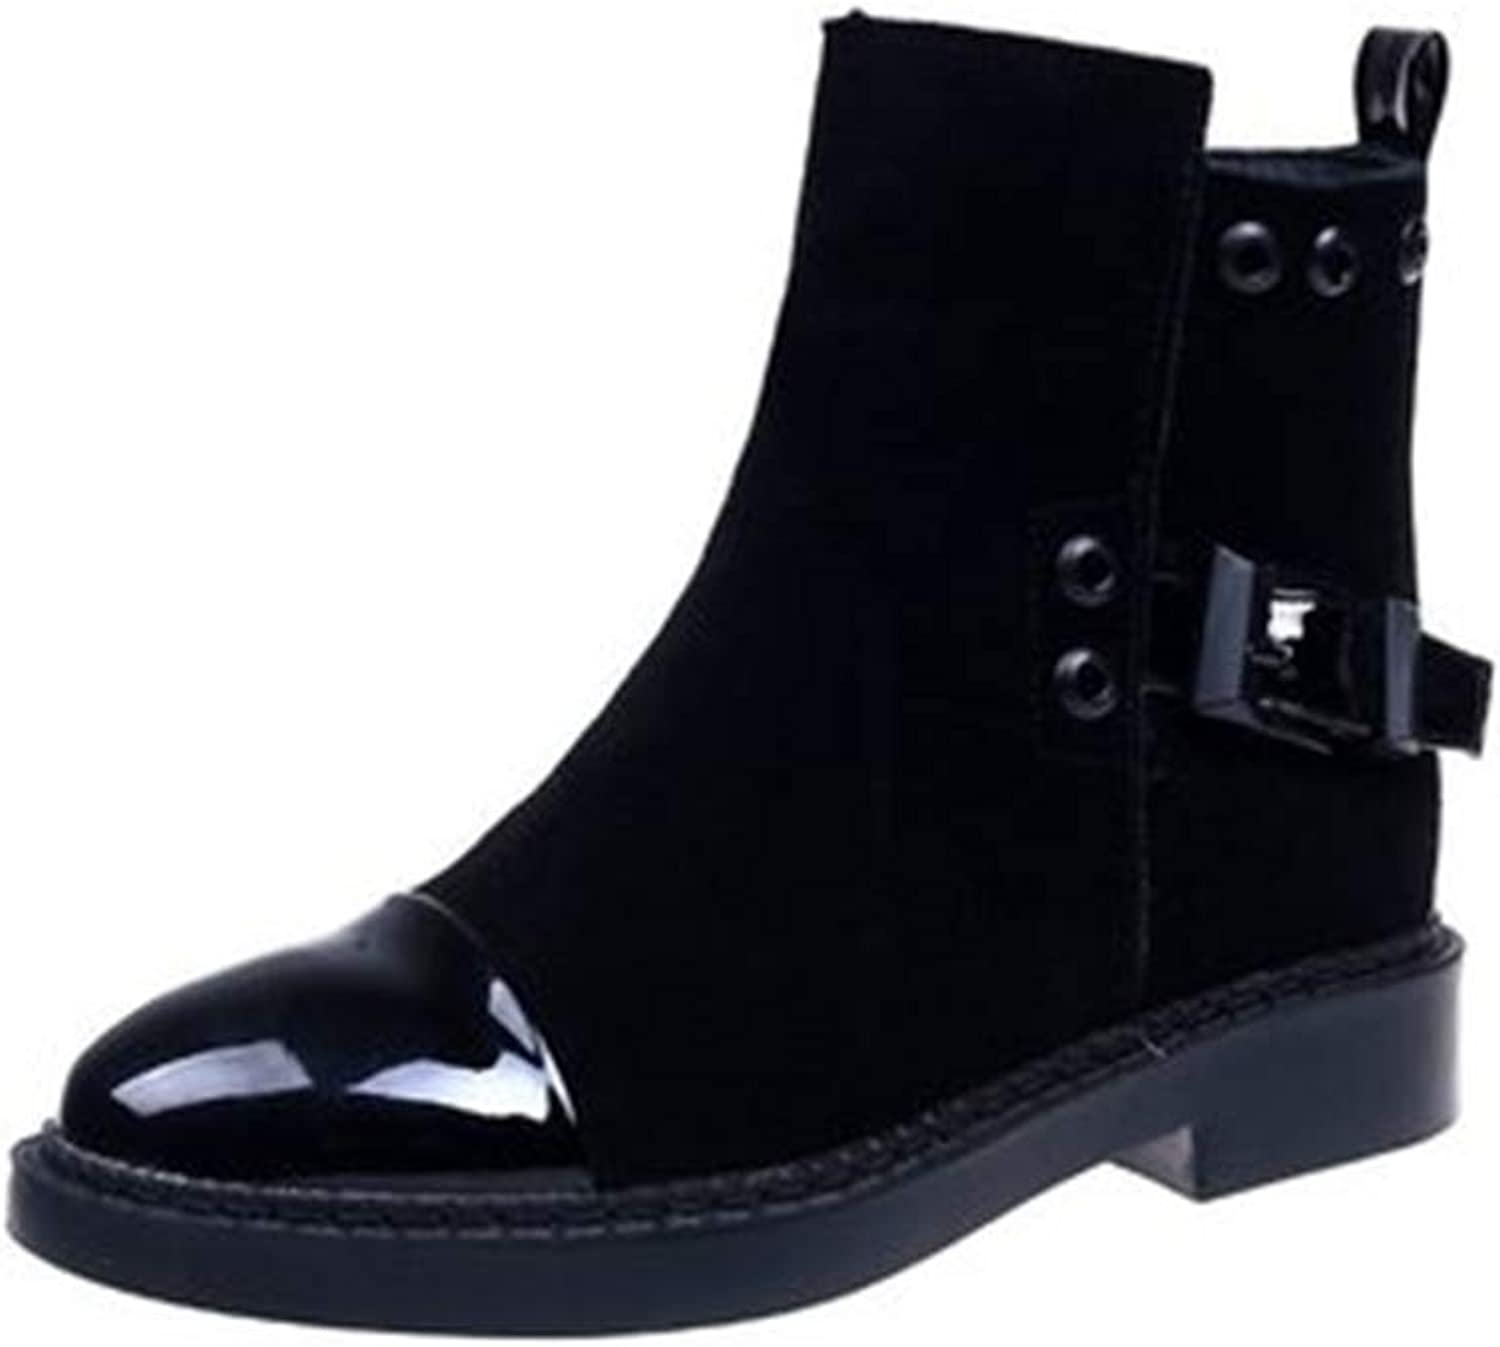 Coollight New Flat Boots Leather Boots with Martin Boots Head Short Tube Boots